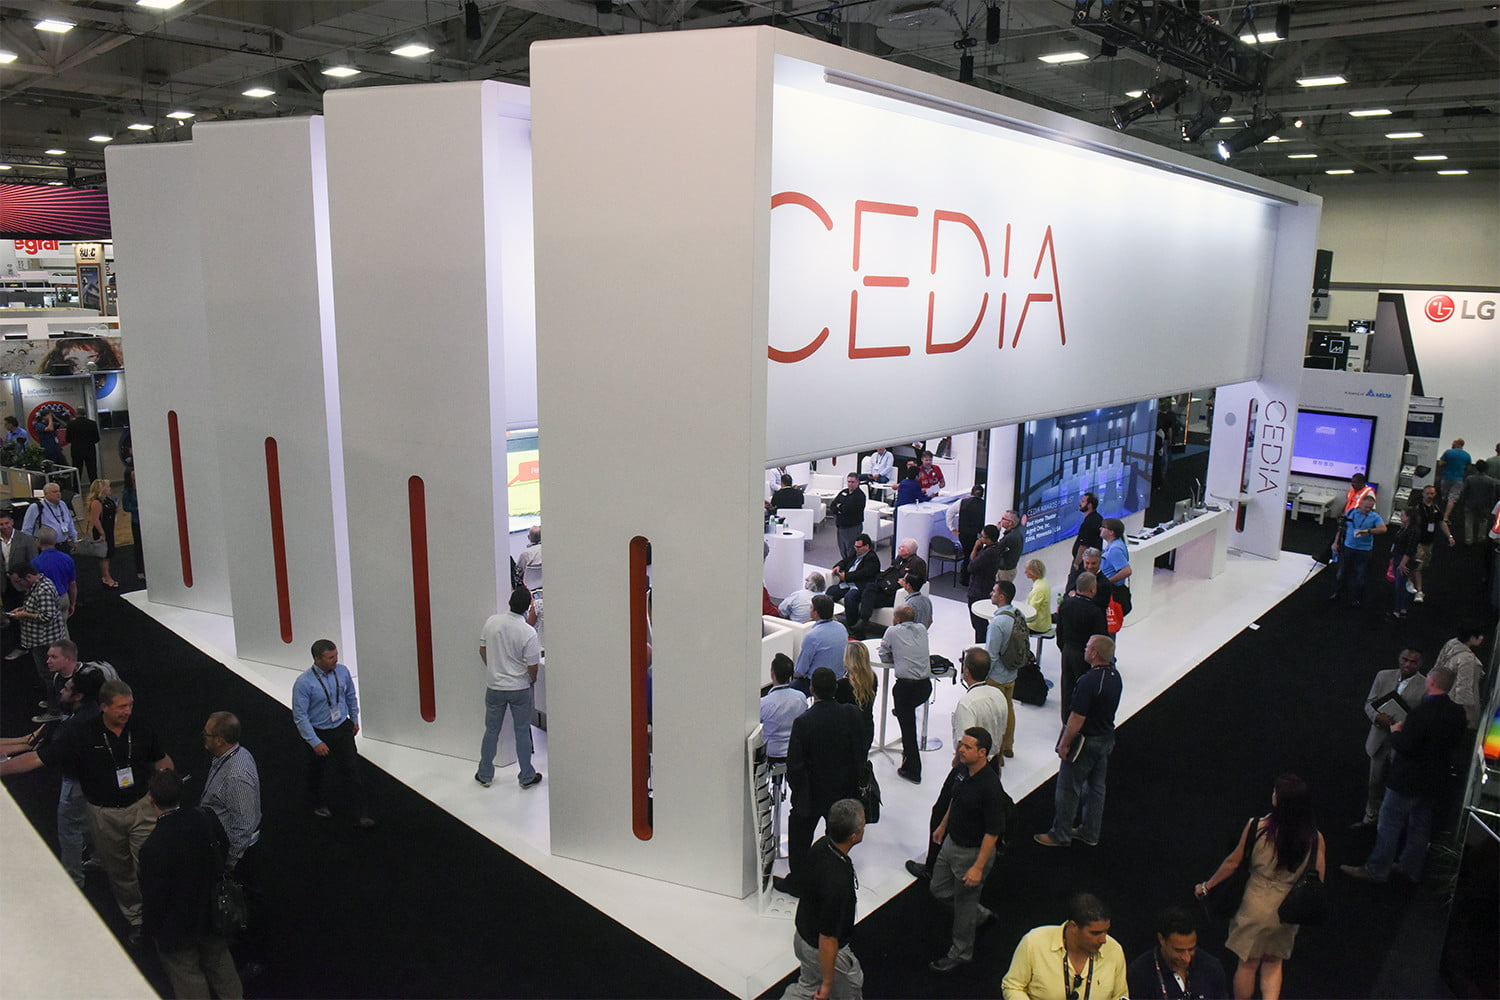 CEDIA Member companies have a strict code of ethics